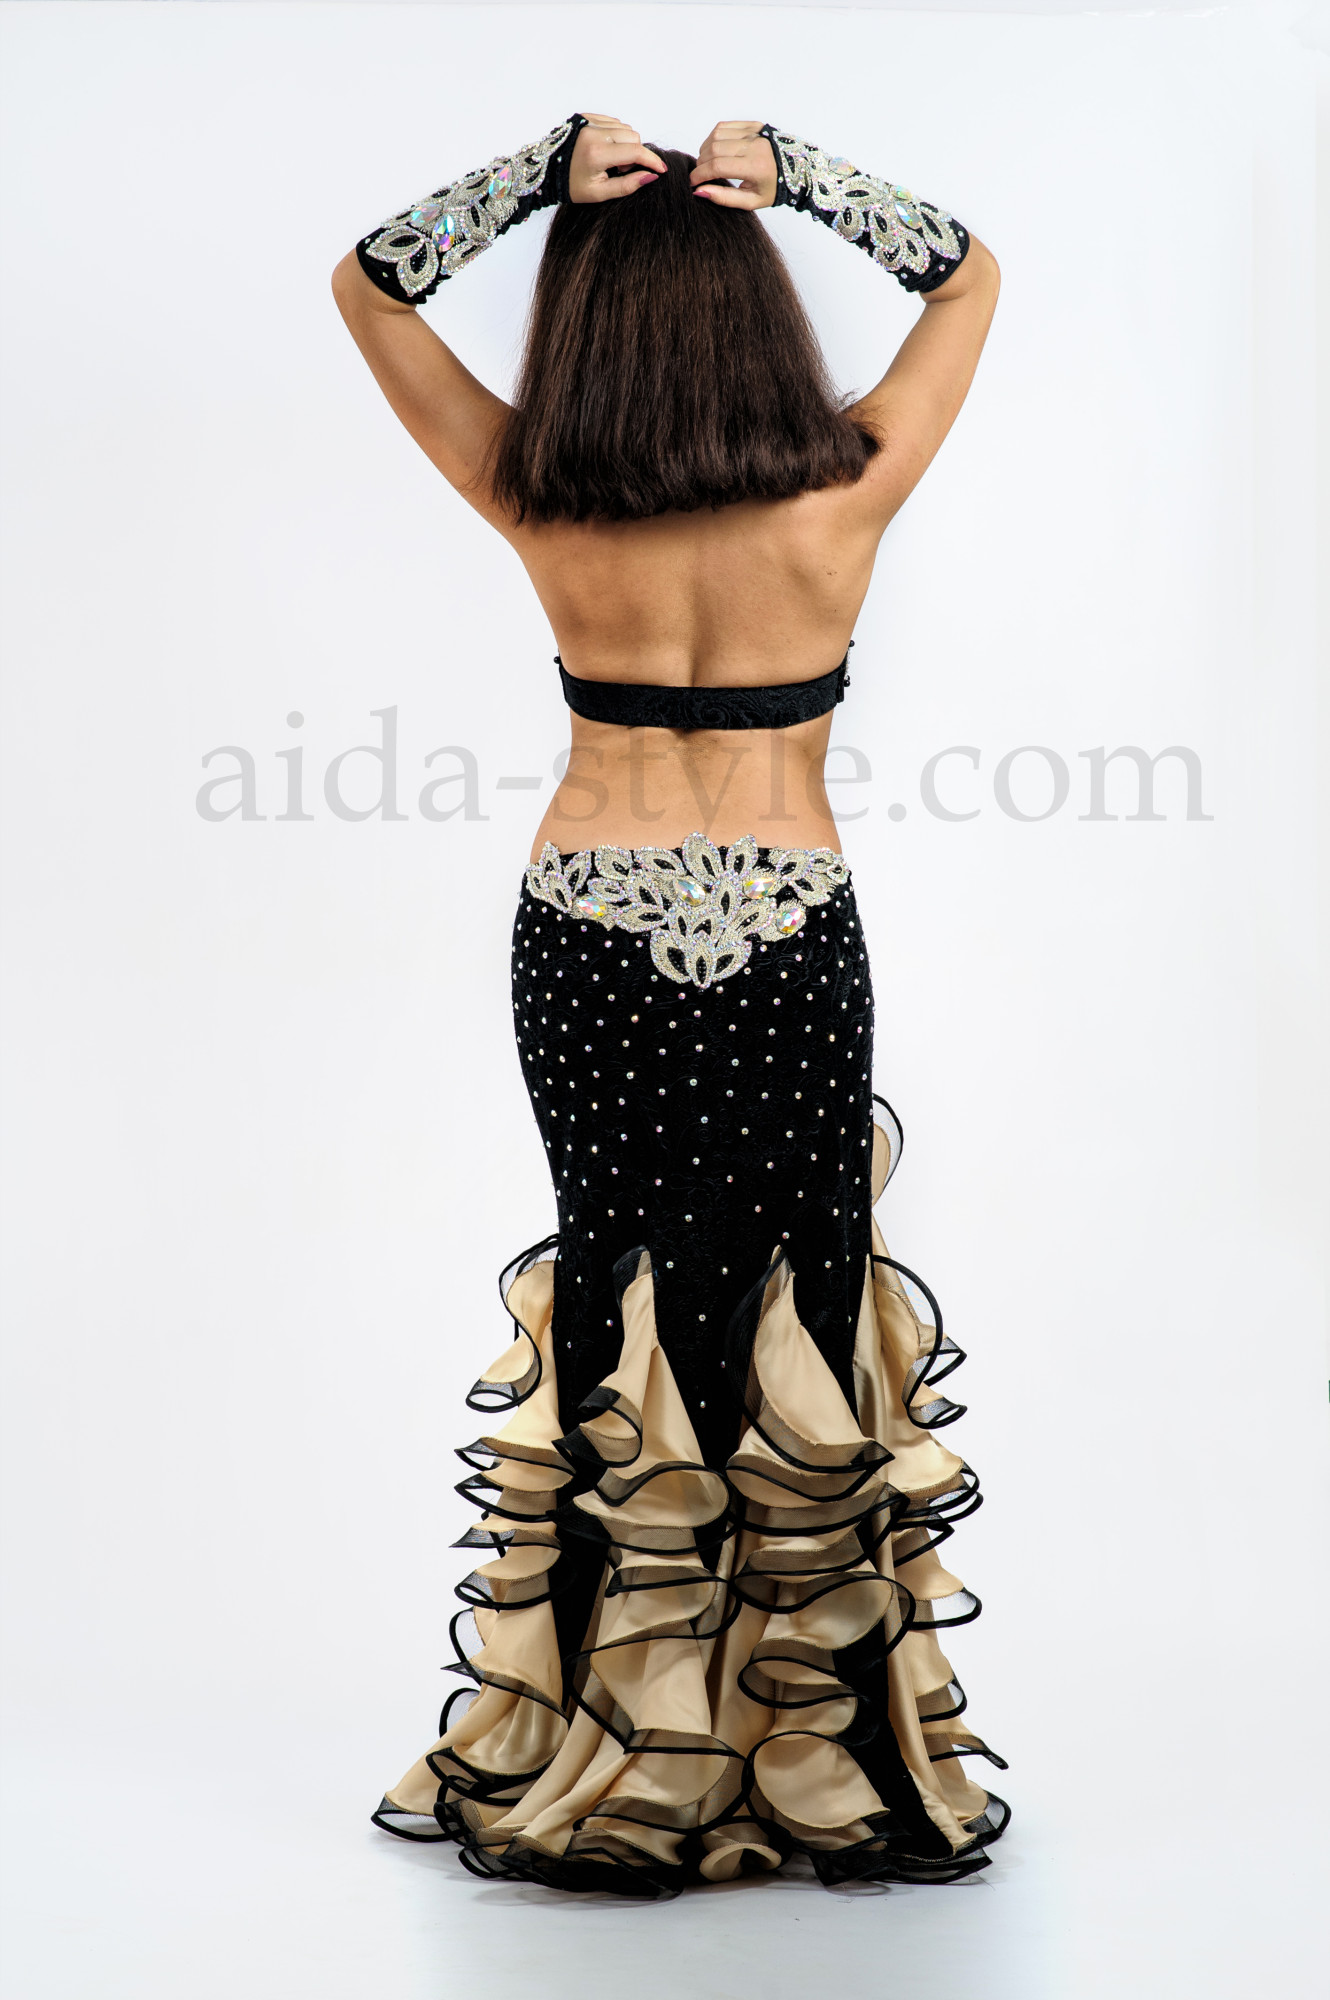 Black and golden custom made professional belly dance outfit with ruffles on the skirt